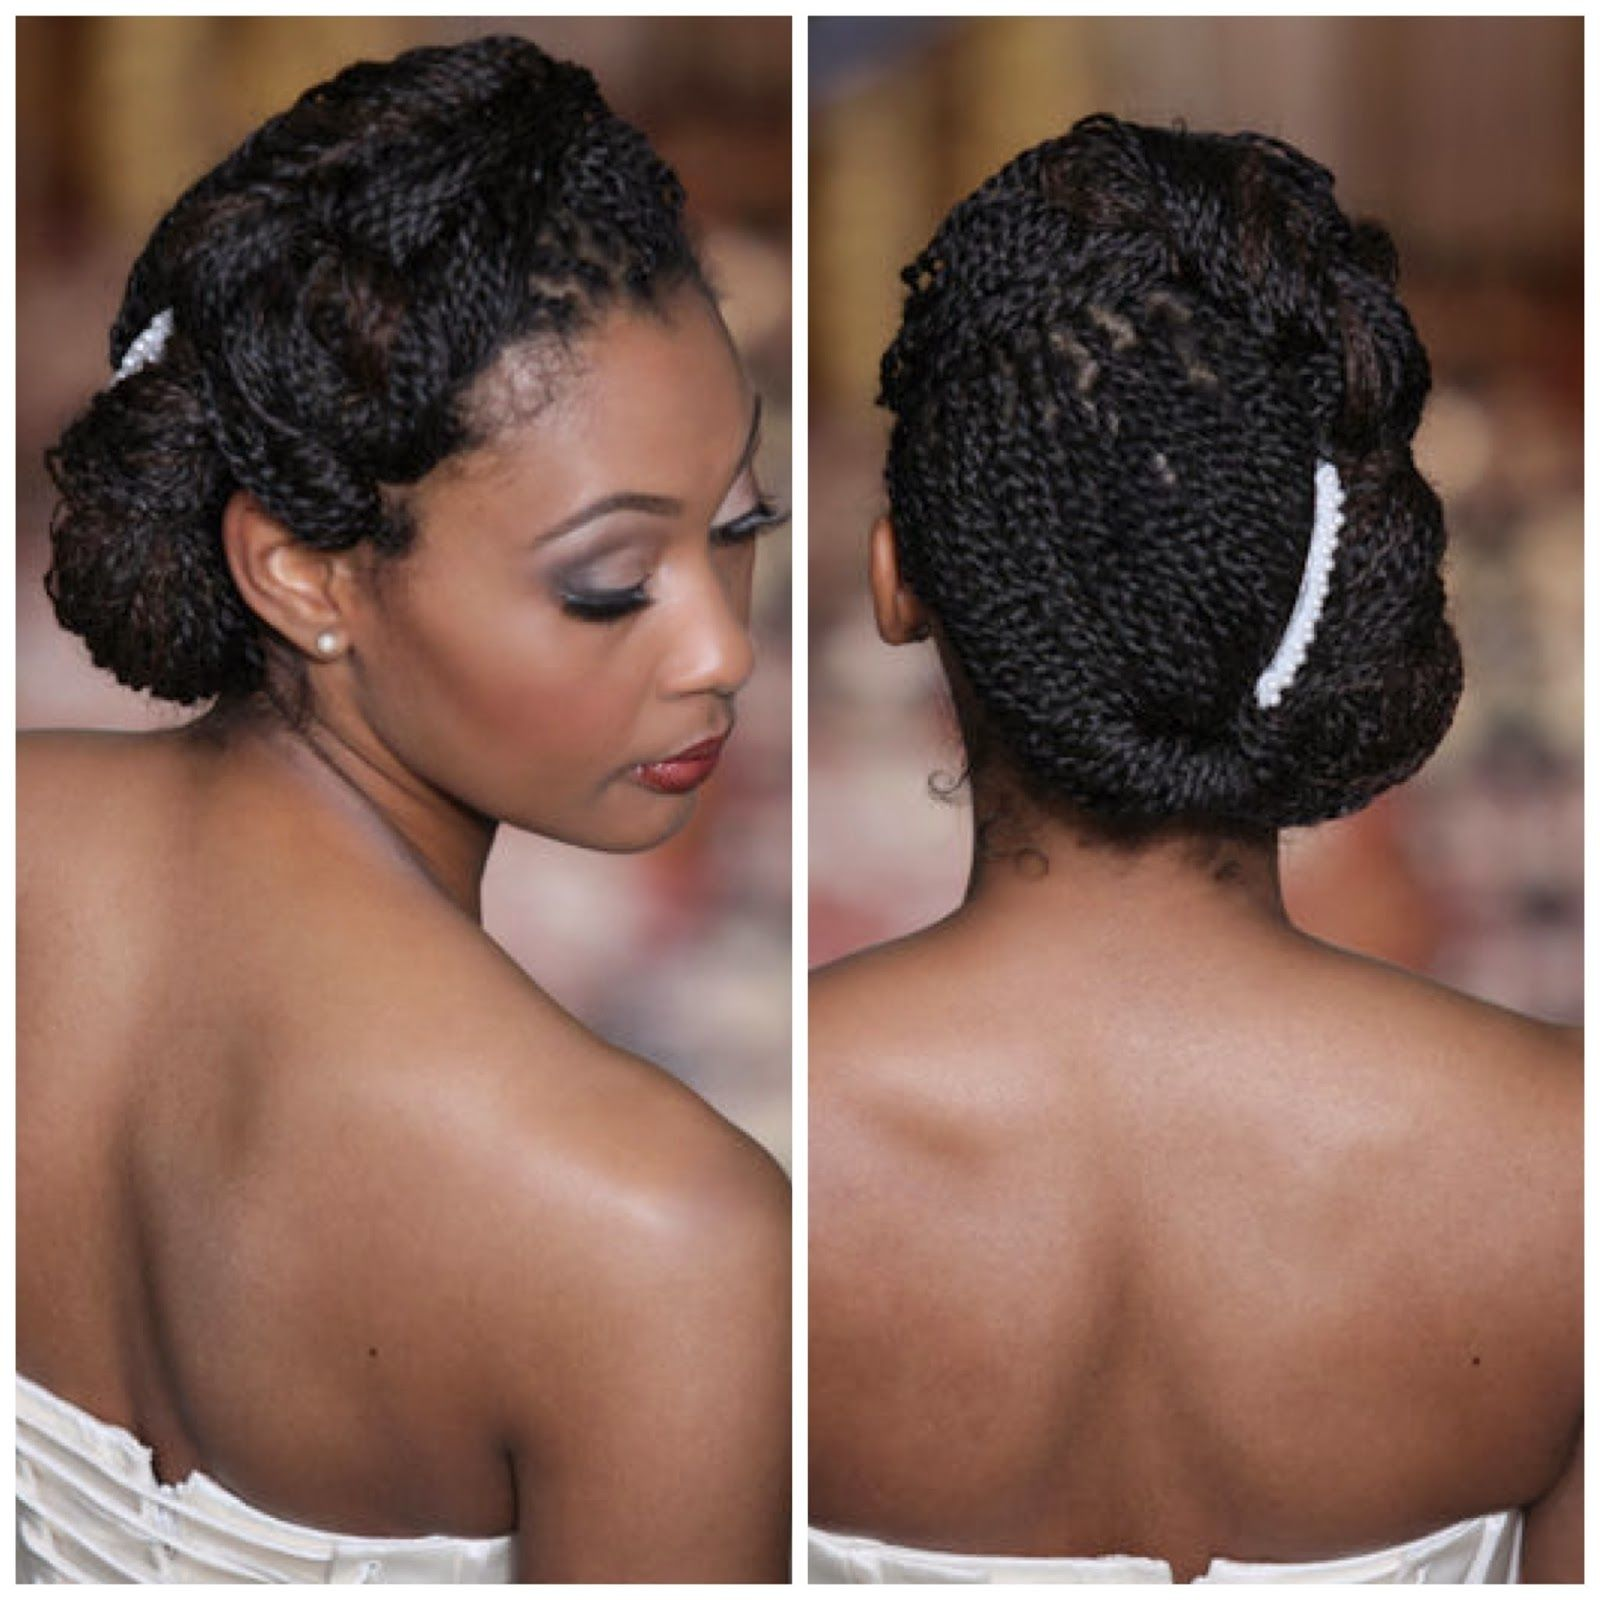 nappilynigeriangirl: how to prepare your natural hair for a